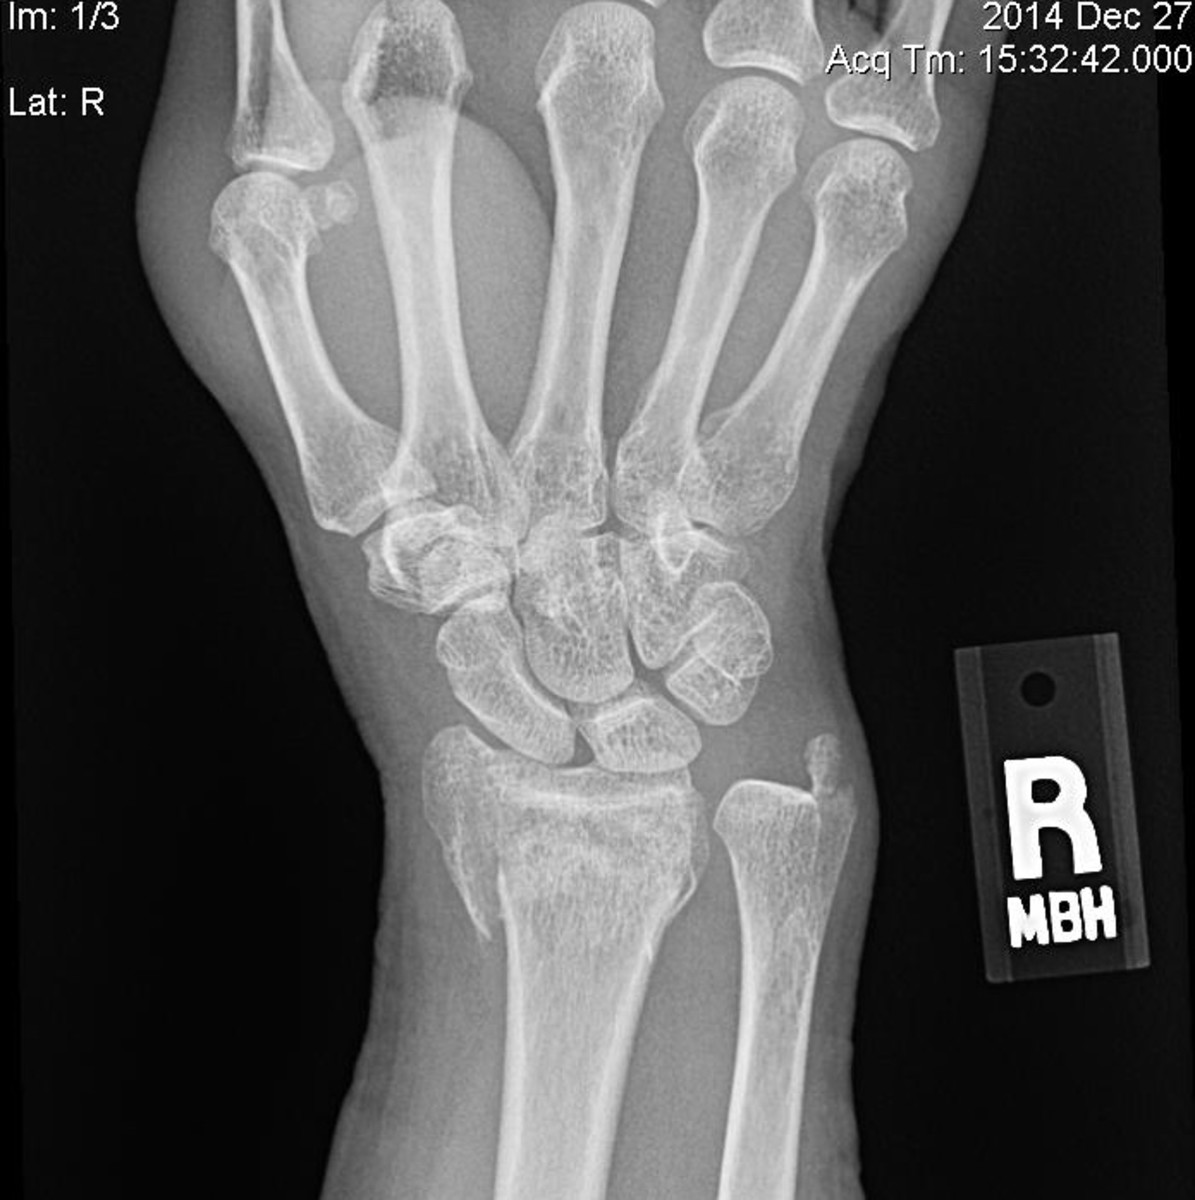 As you can see, my ulna was crushed and my radius was dislocated.